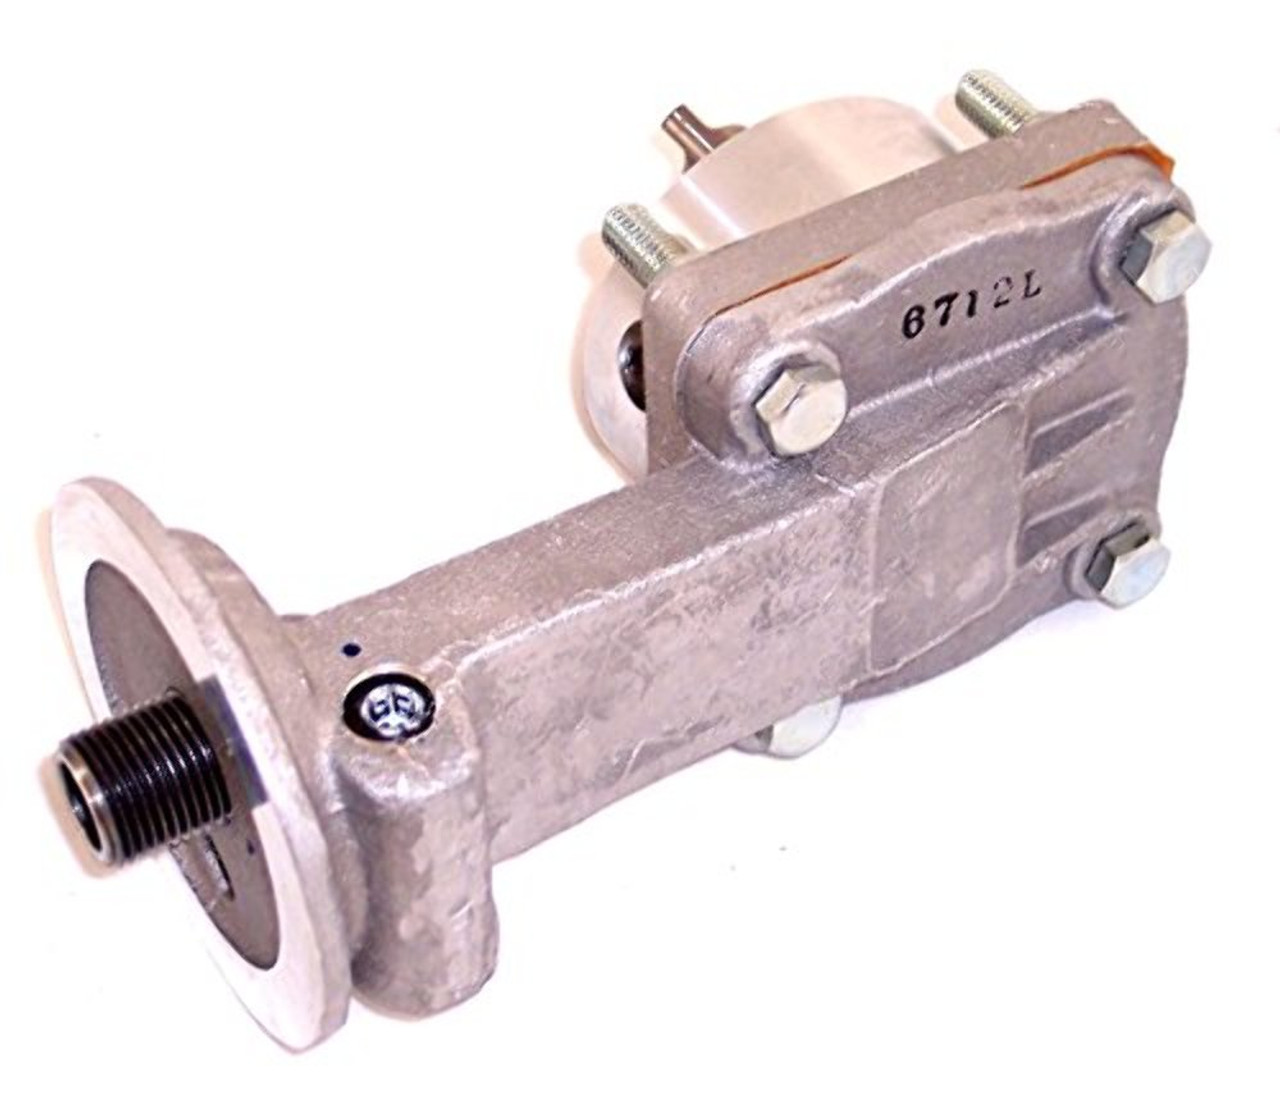 EMPI 9207-7 Full Flow Filter Pump - Late Camshaft / Dished Cam - 1600cc From 1971-1979 - VW Dune Buggy Bug Ghia Thing Trike Baja